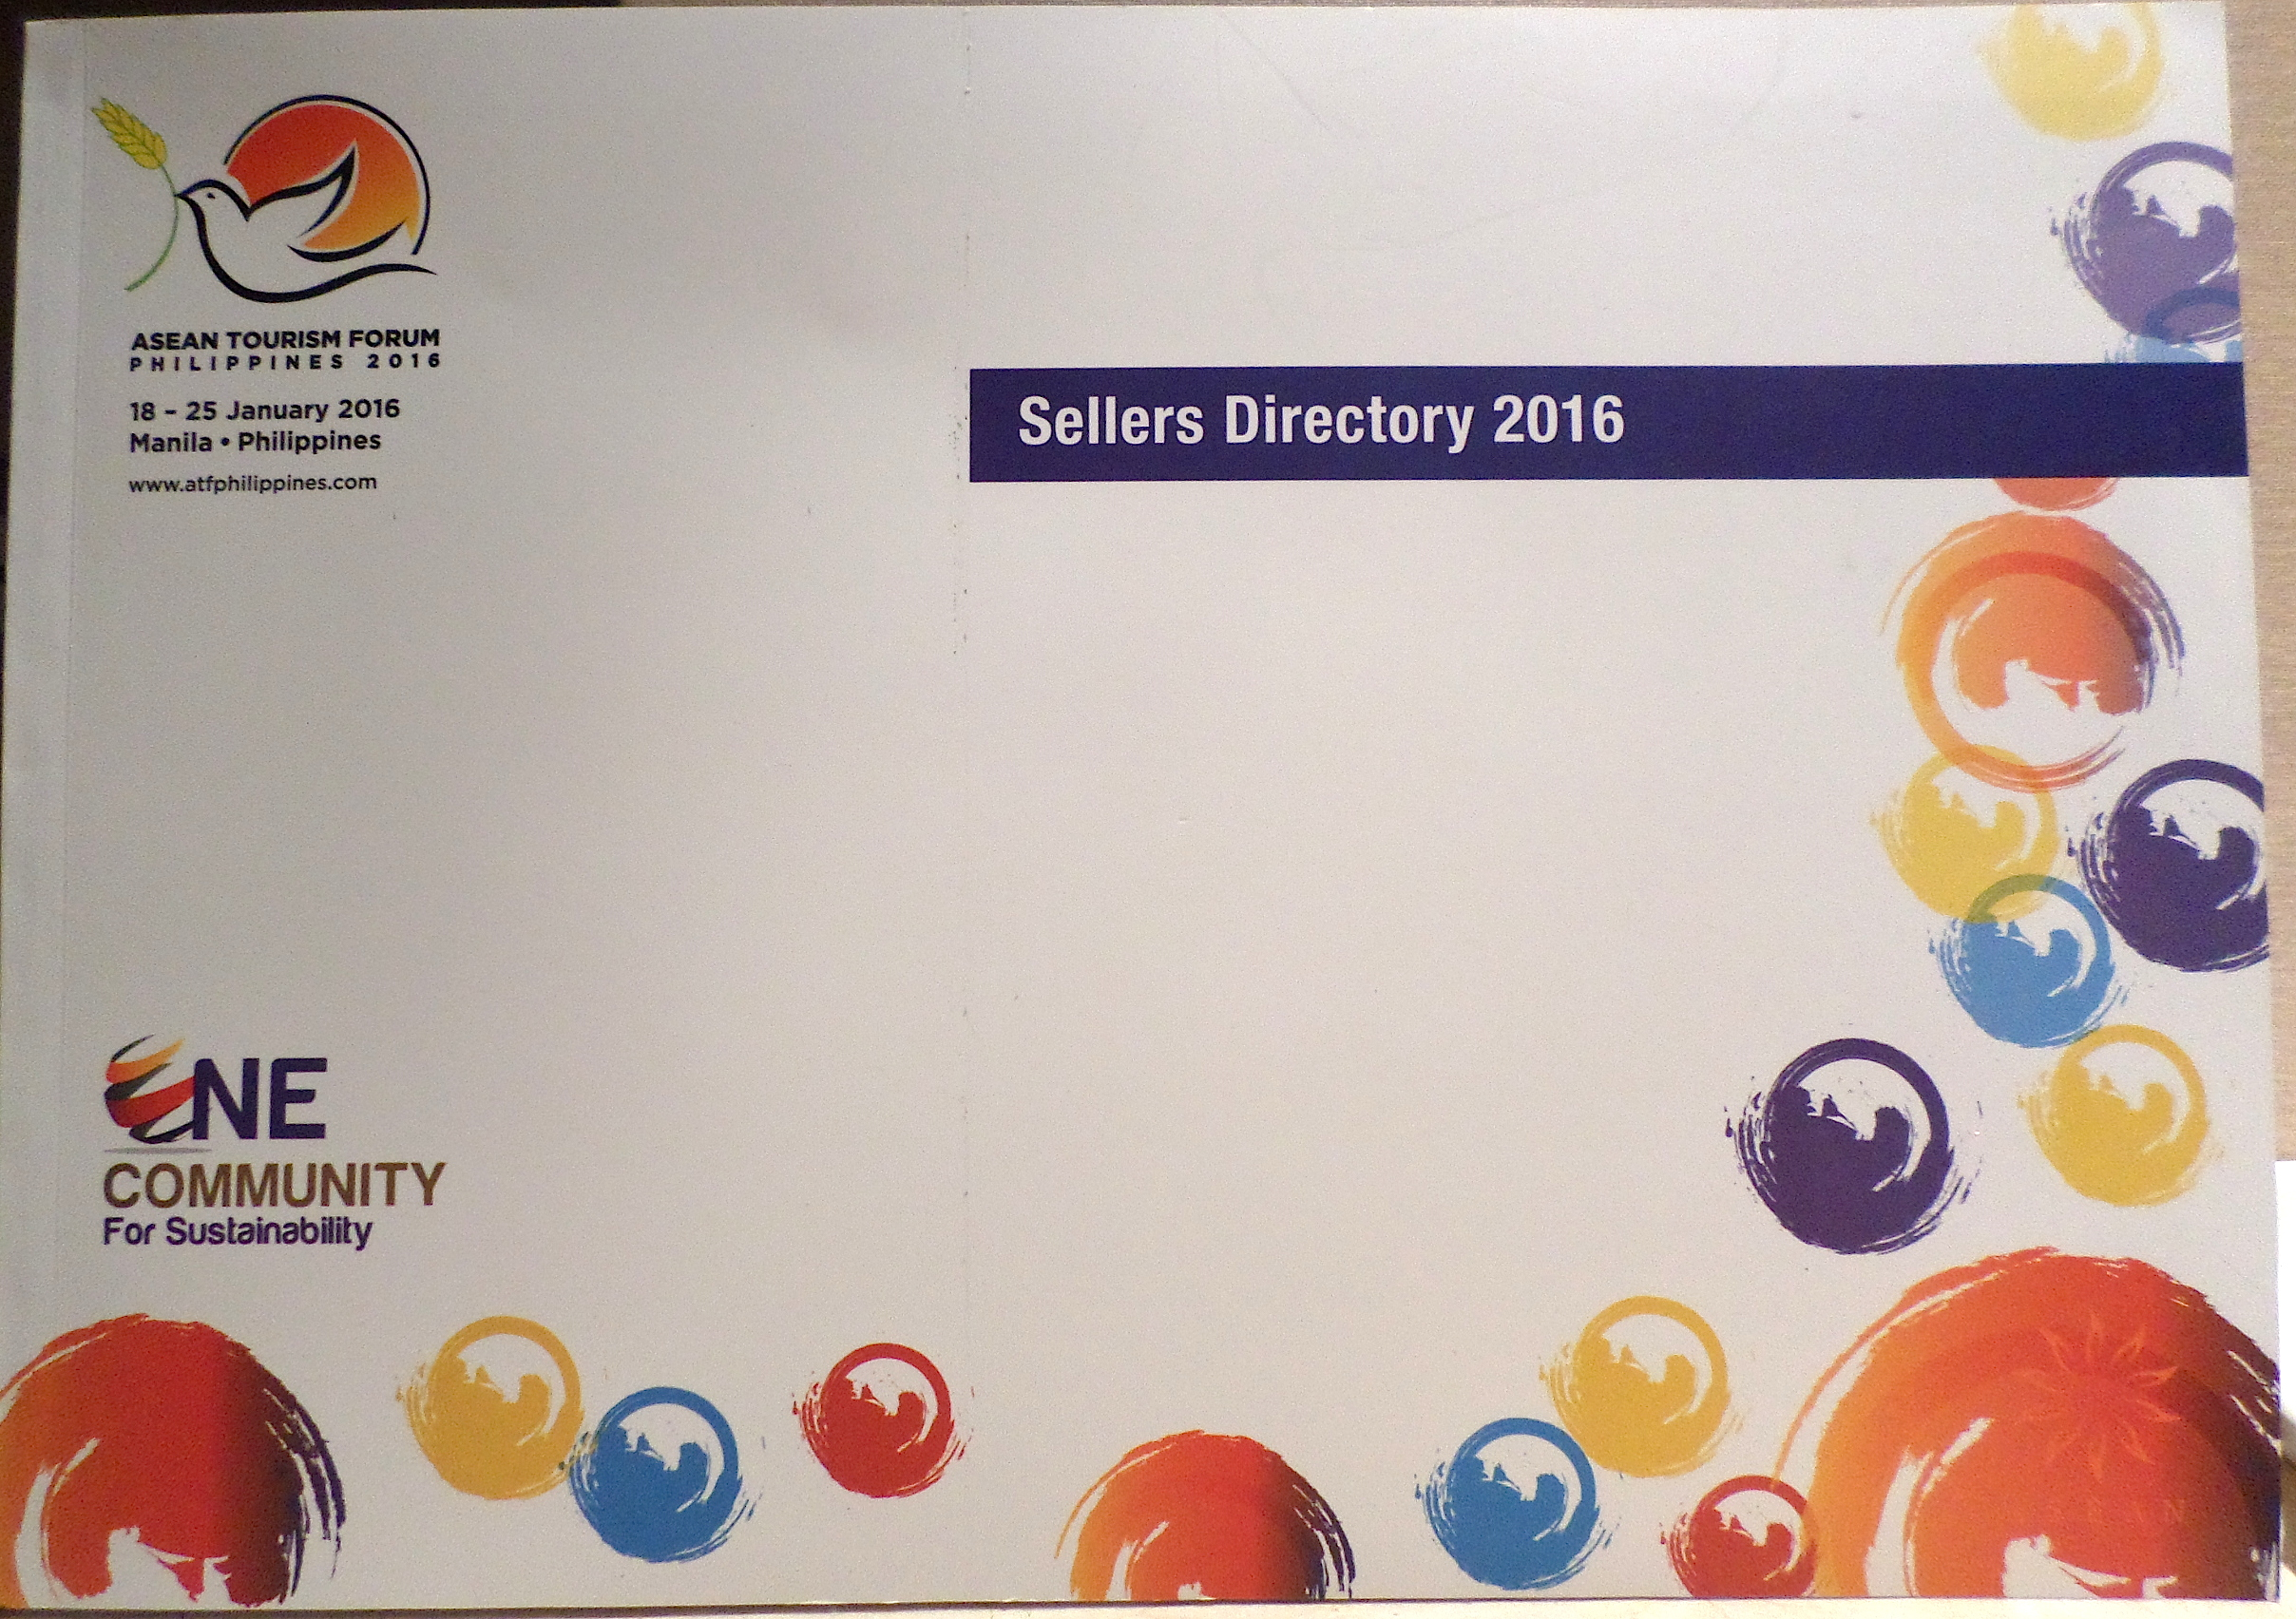 The buyers and sellers directories had no ASEAN emblem.